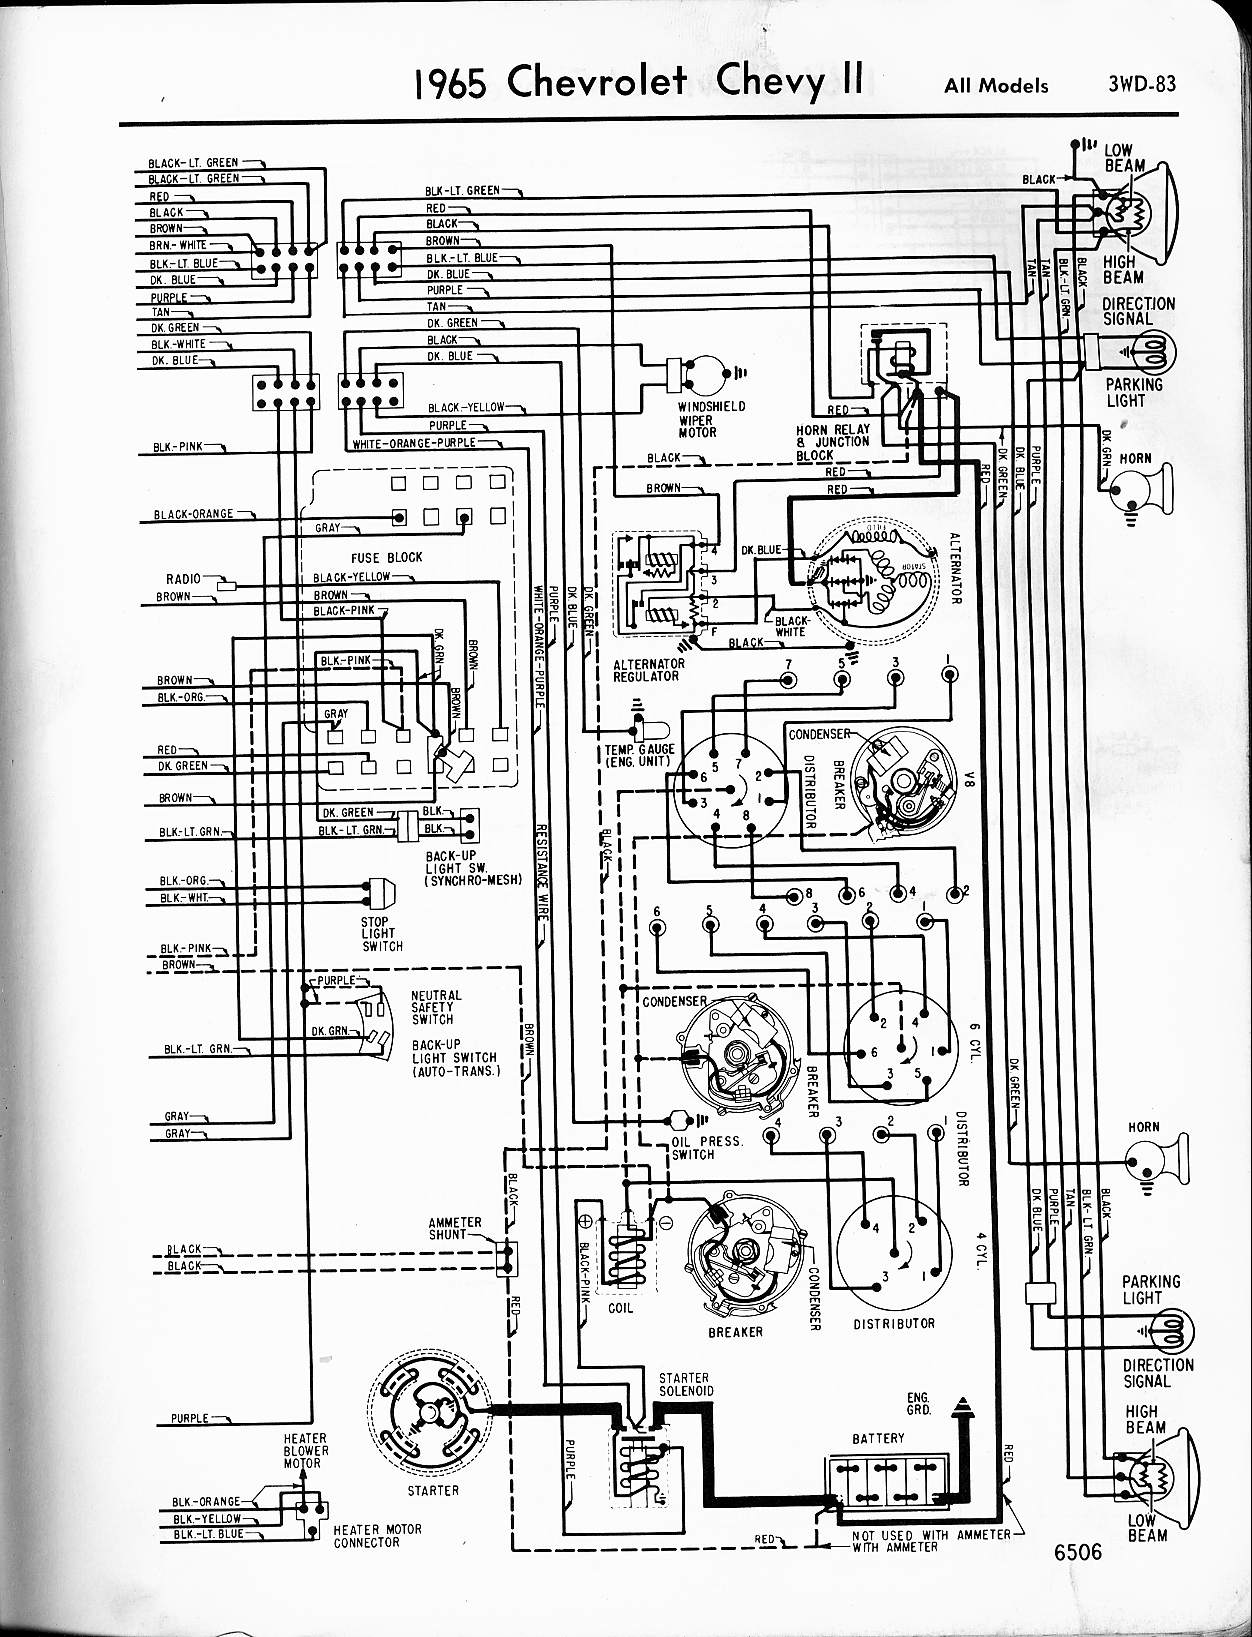 1968 thunderbird wiring diagram experts of wiring diagram u2022 rh  evilcloud co uk 65 Thunderbird 66 t bird wiring diagram